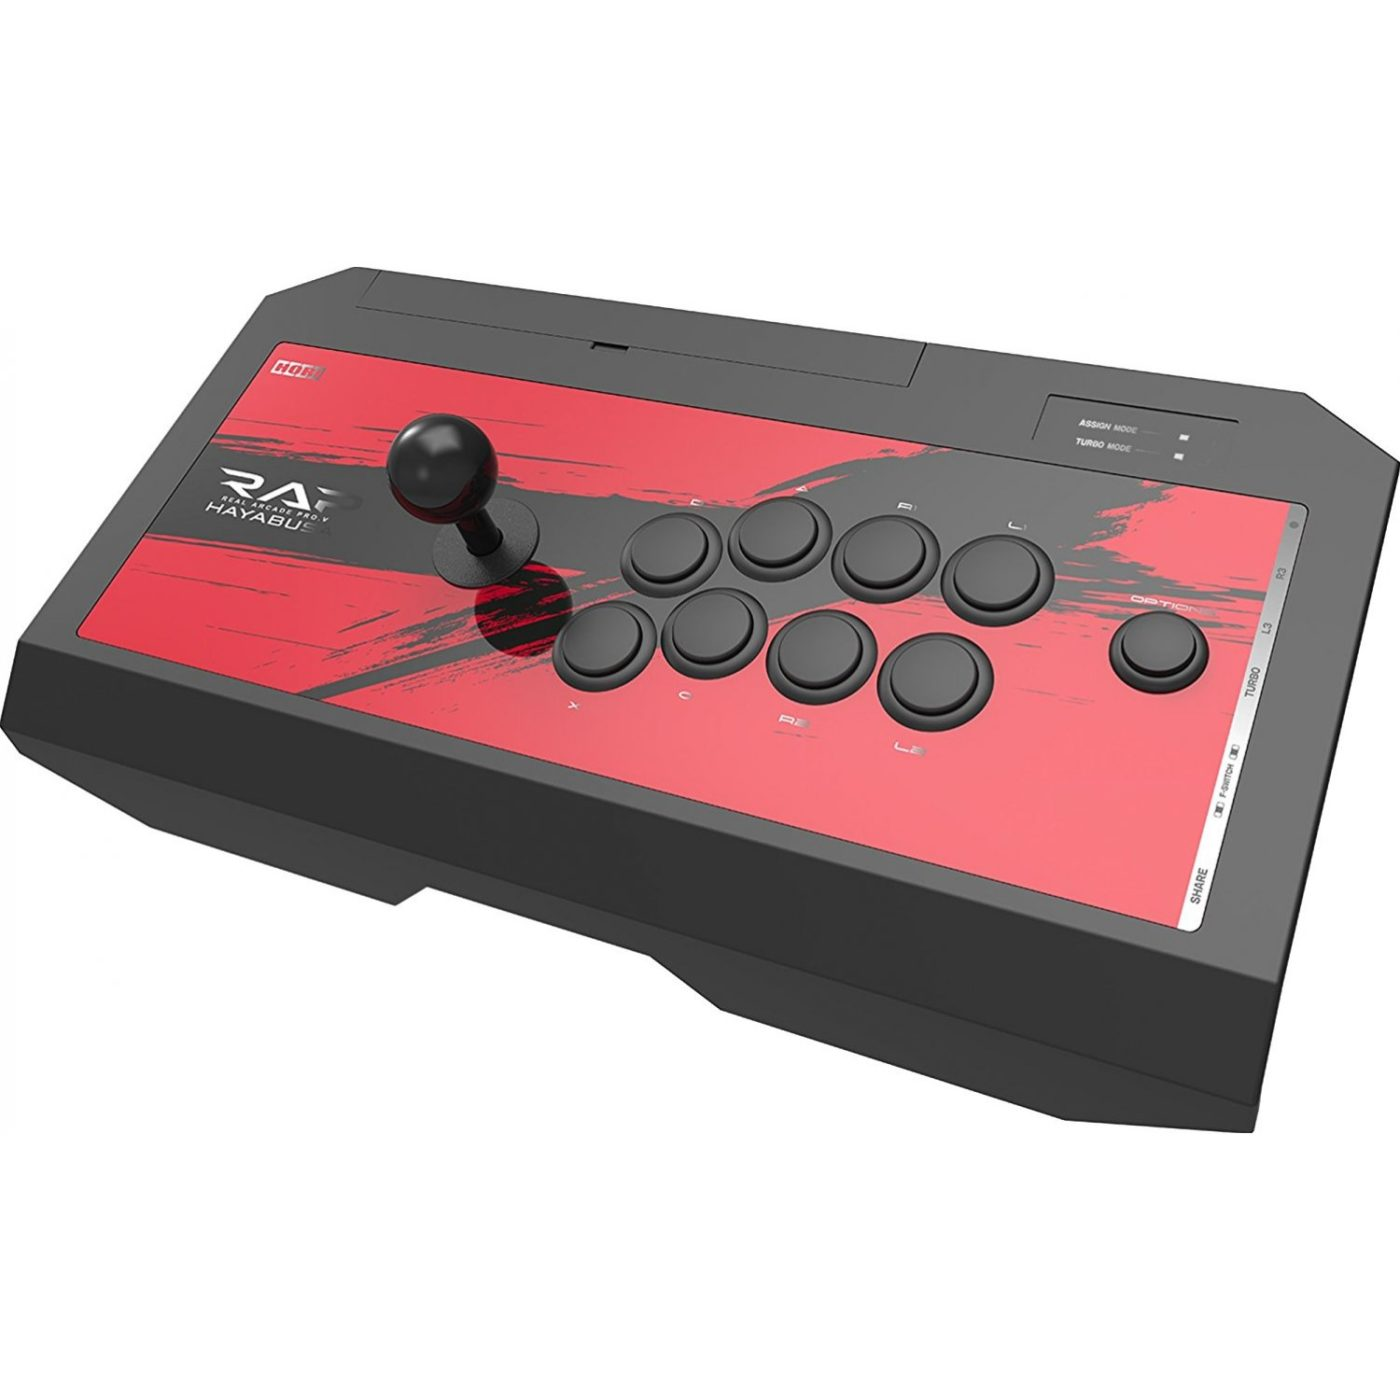 Hori Rap V Hayabusa Review Sticks And Stones Sony Playstation Ps4 Injustice 2 R3 Punched Out